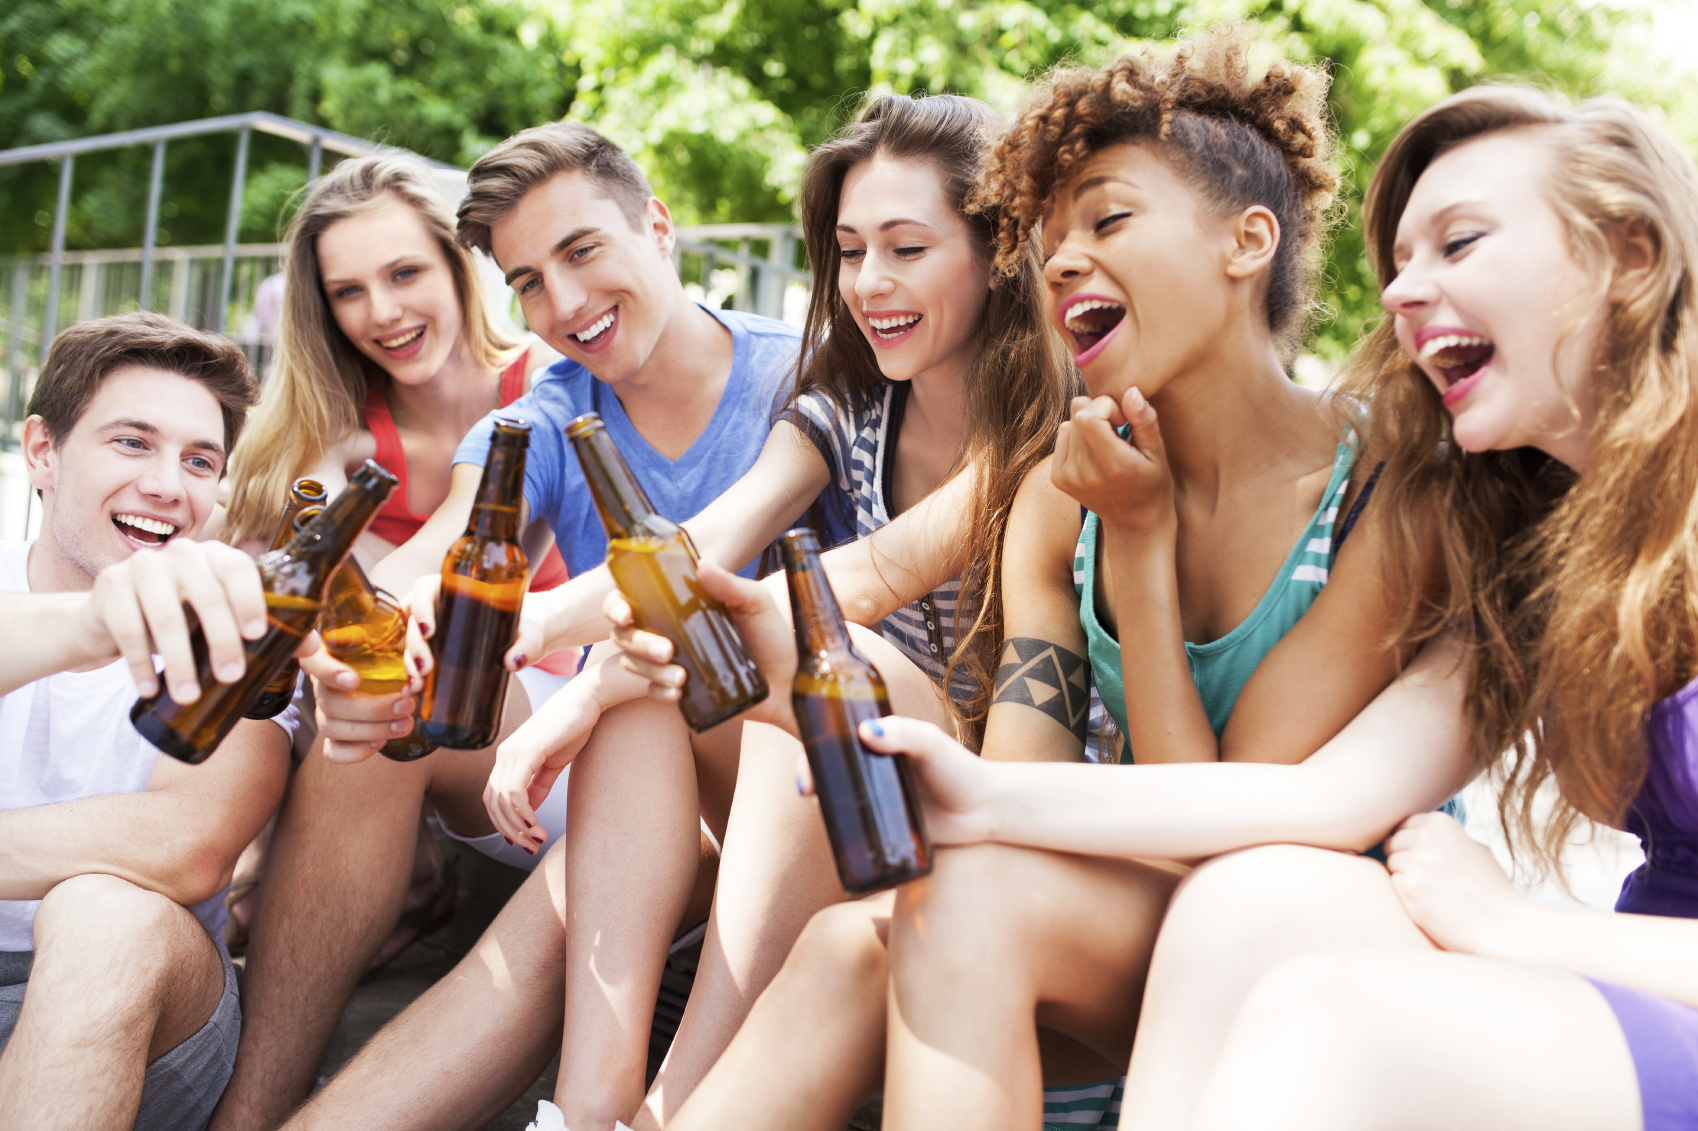 The US has the one of the highest minimum drinking age in the world.